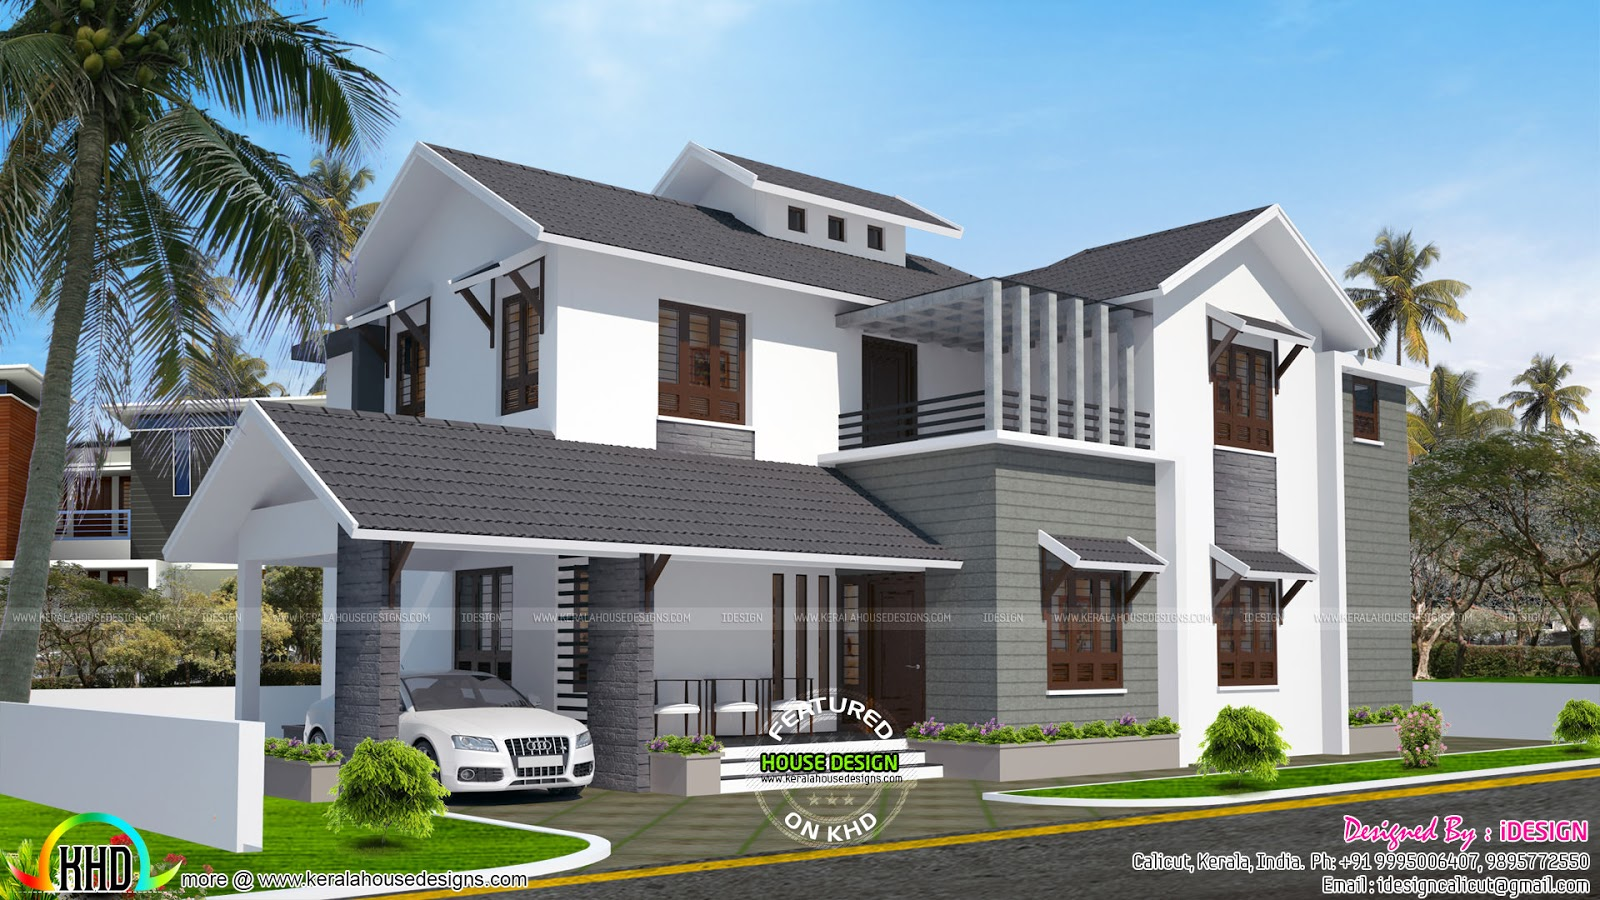 18 Lakh Cost Estimated Remodeling Home Plan Kerala Home